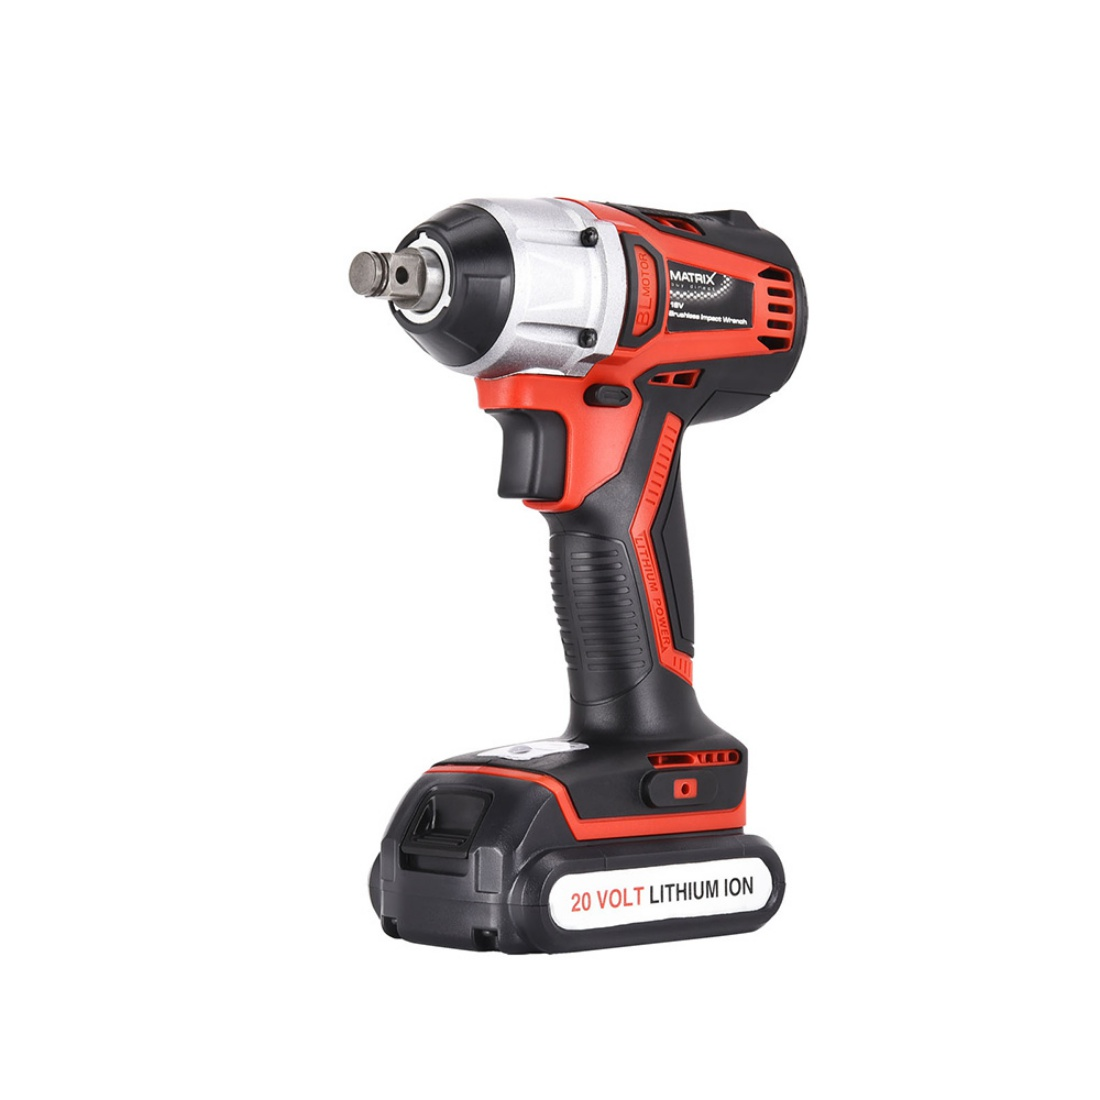 New Matrix 20V Brushless Cordless Impact Driver Li-Ion Electric Power Tool